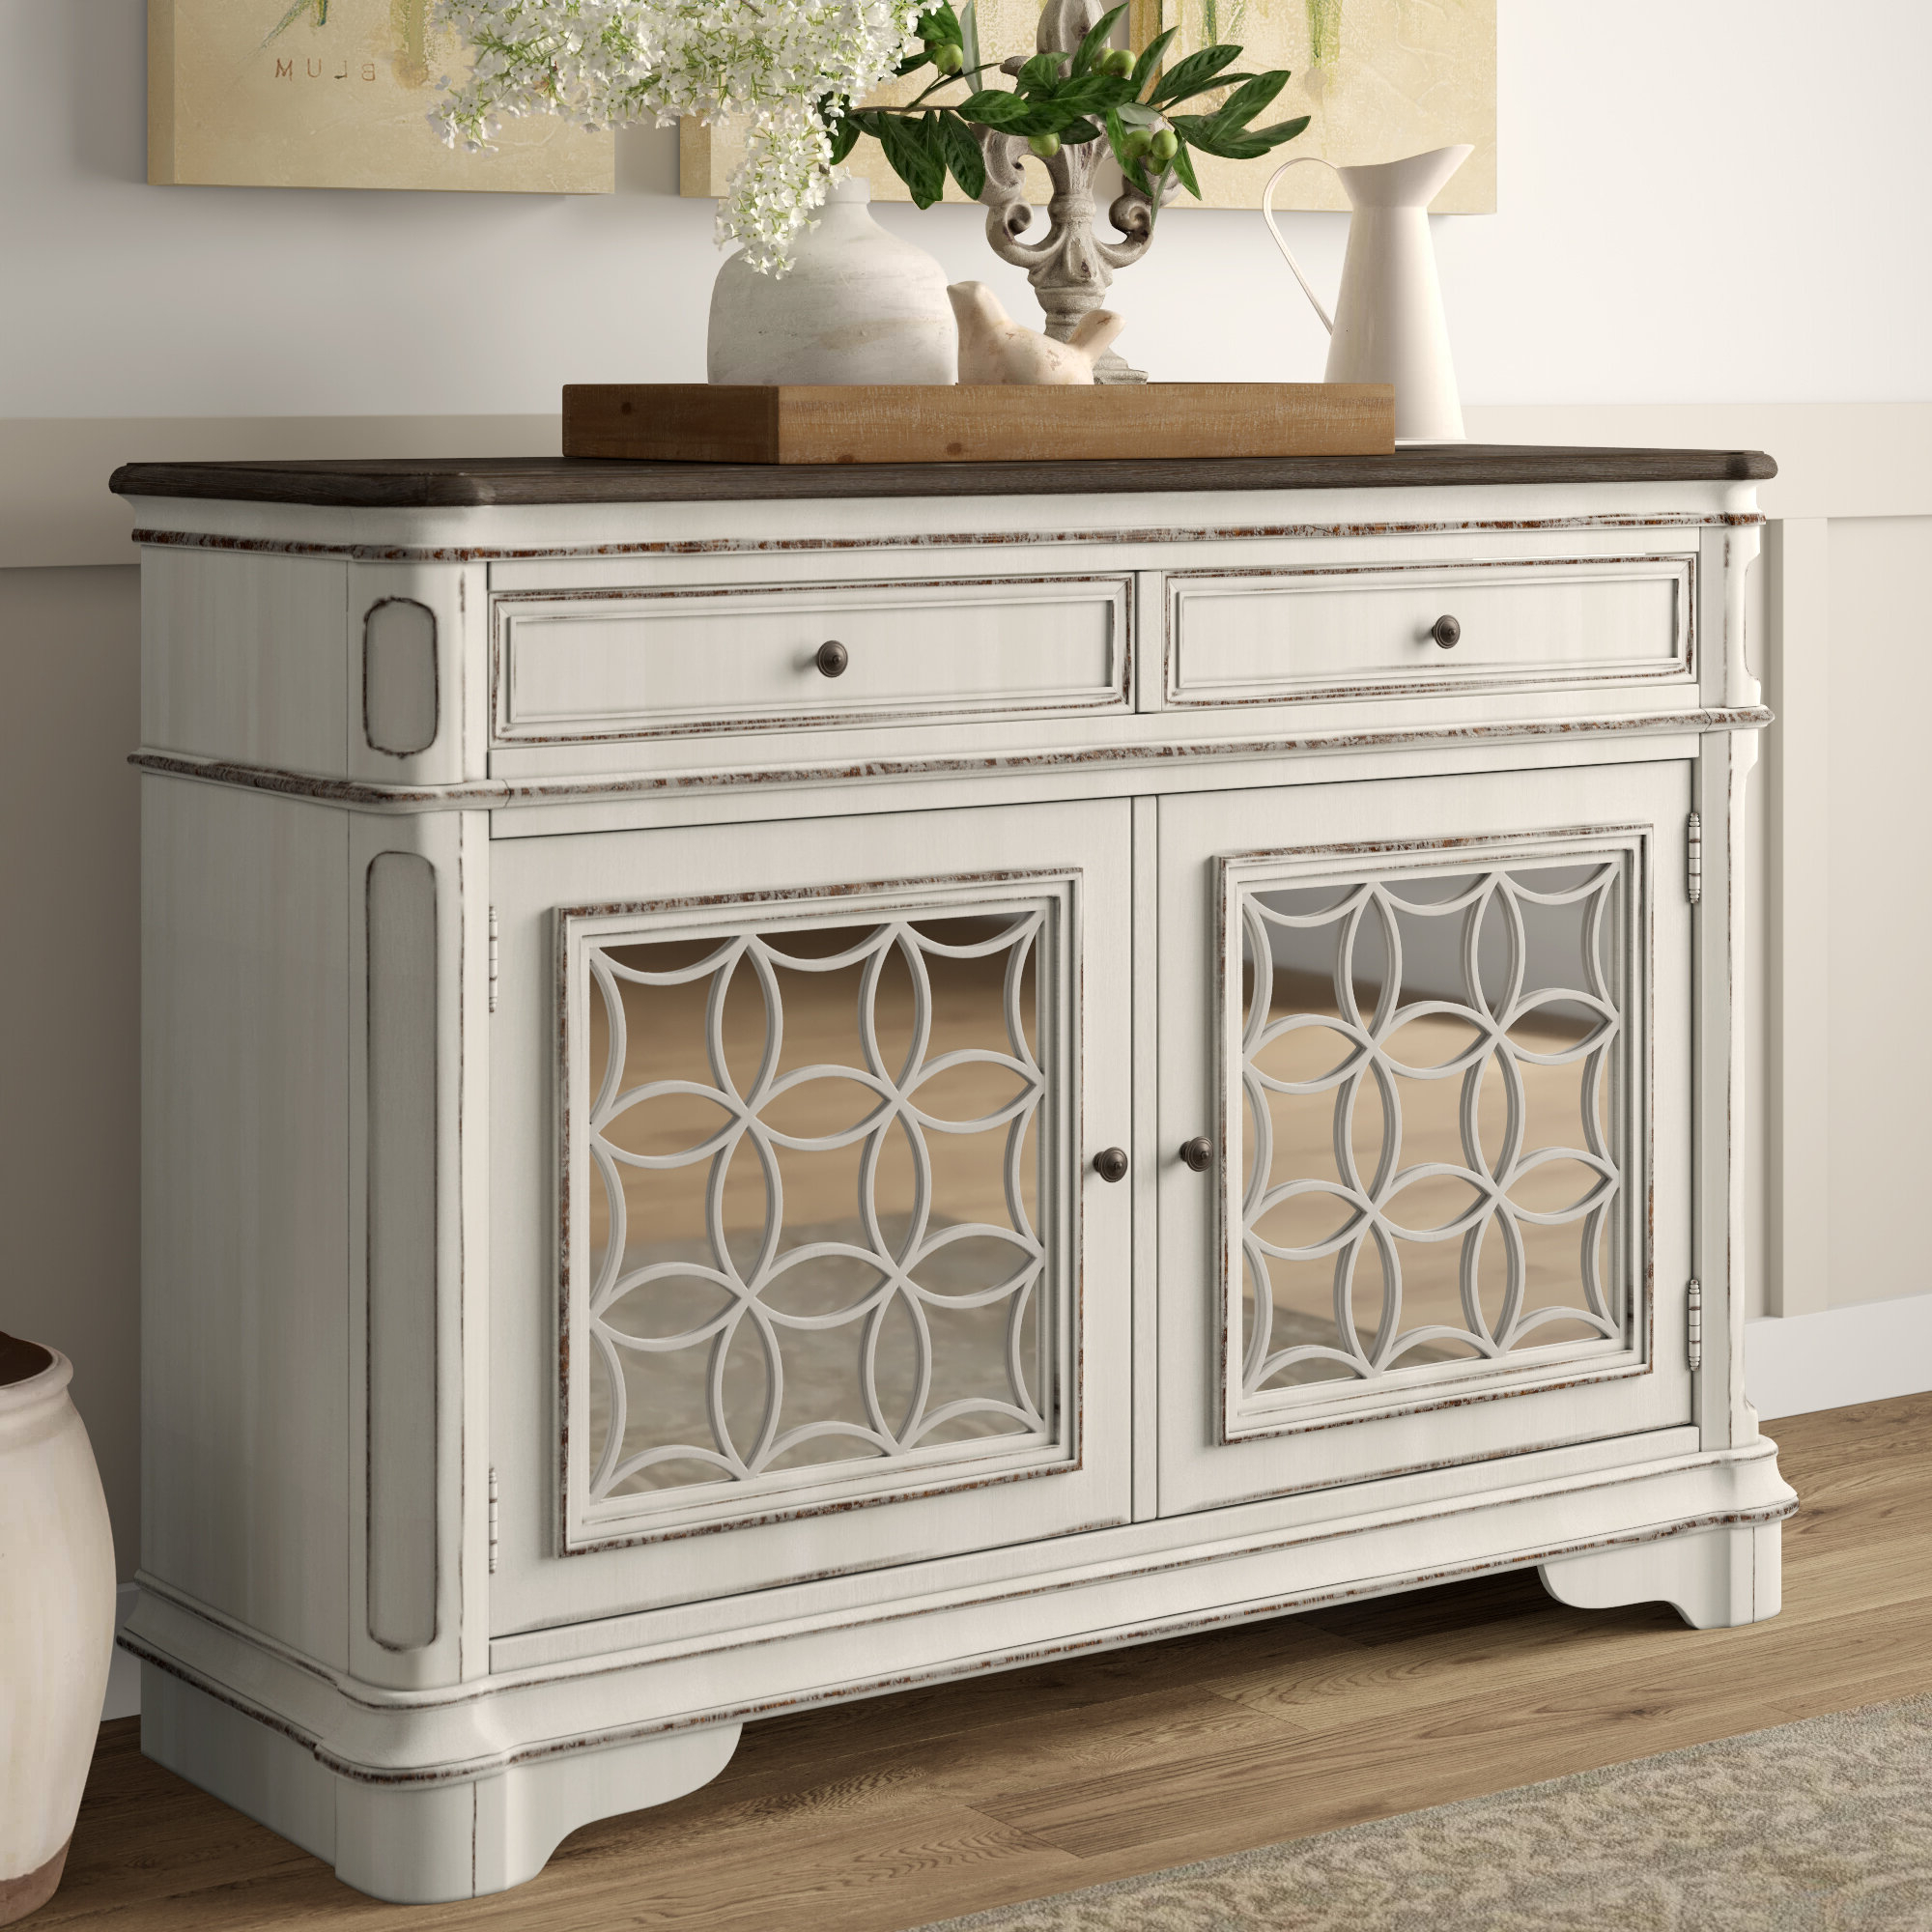 Lark Manor Tiphaine Sideboard With Regard To Tiphaine Sideboards (View 6 of 20)